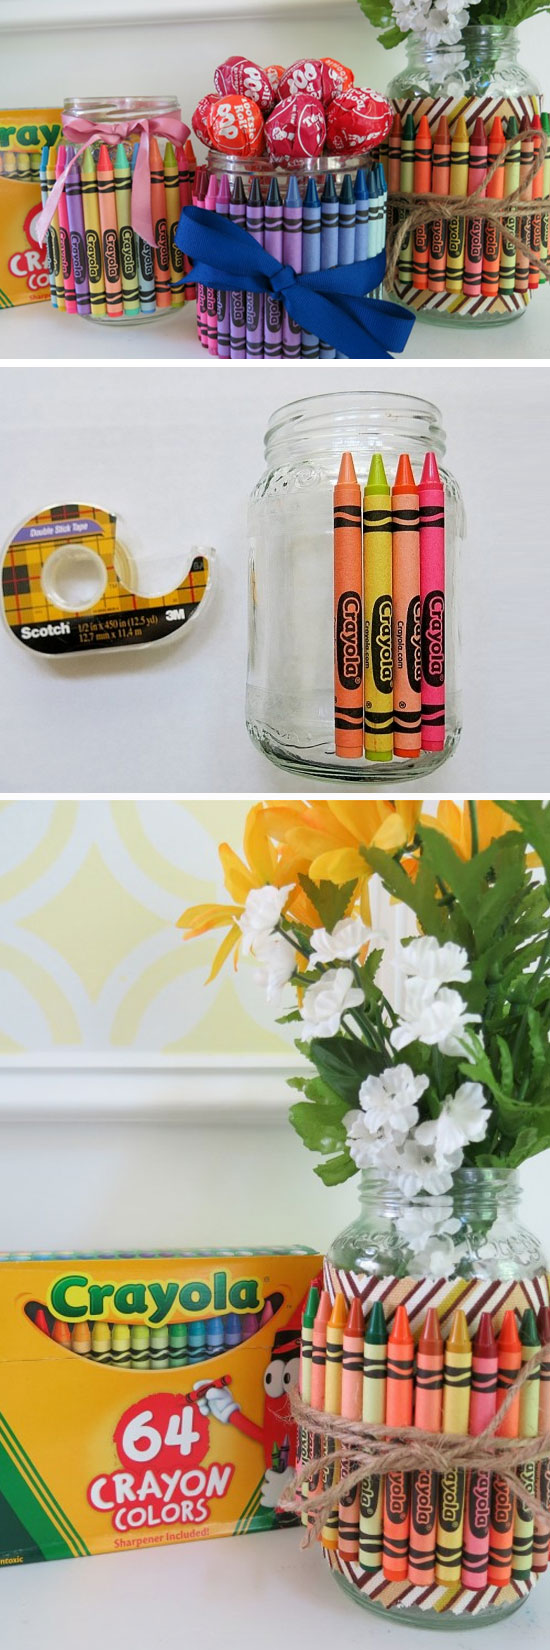 10 Awesome DIY Gifts for Teachers